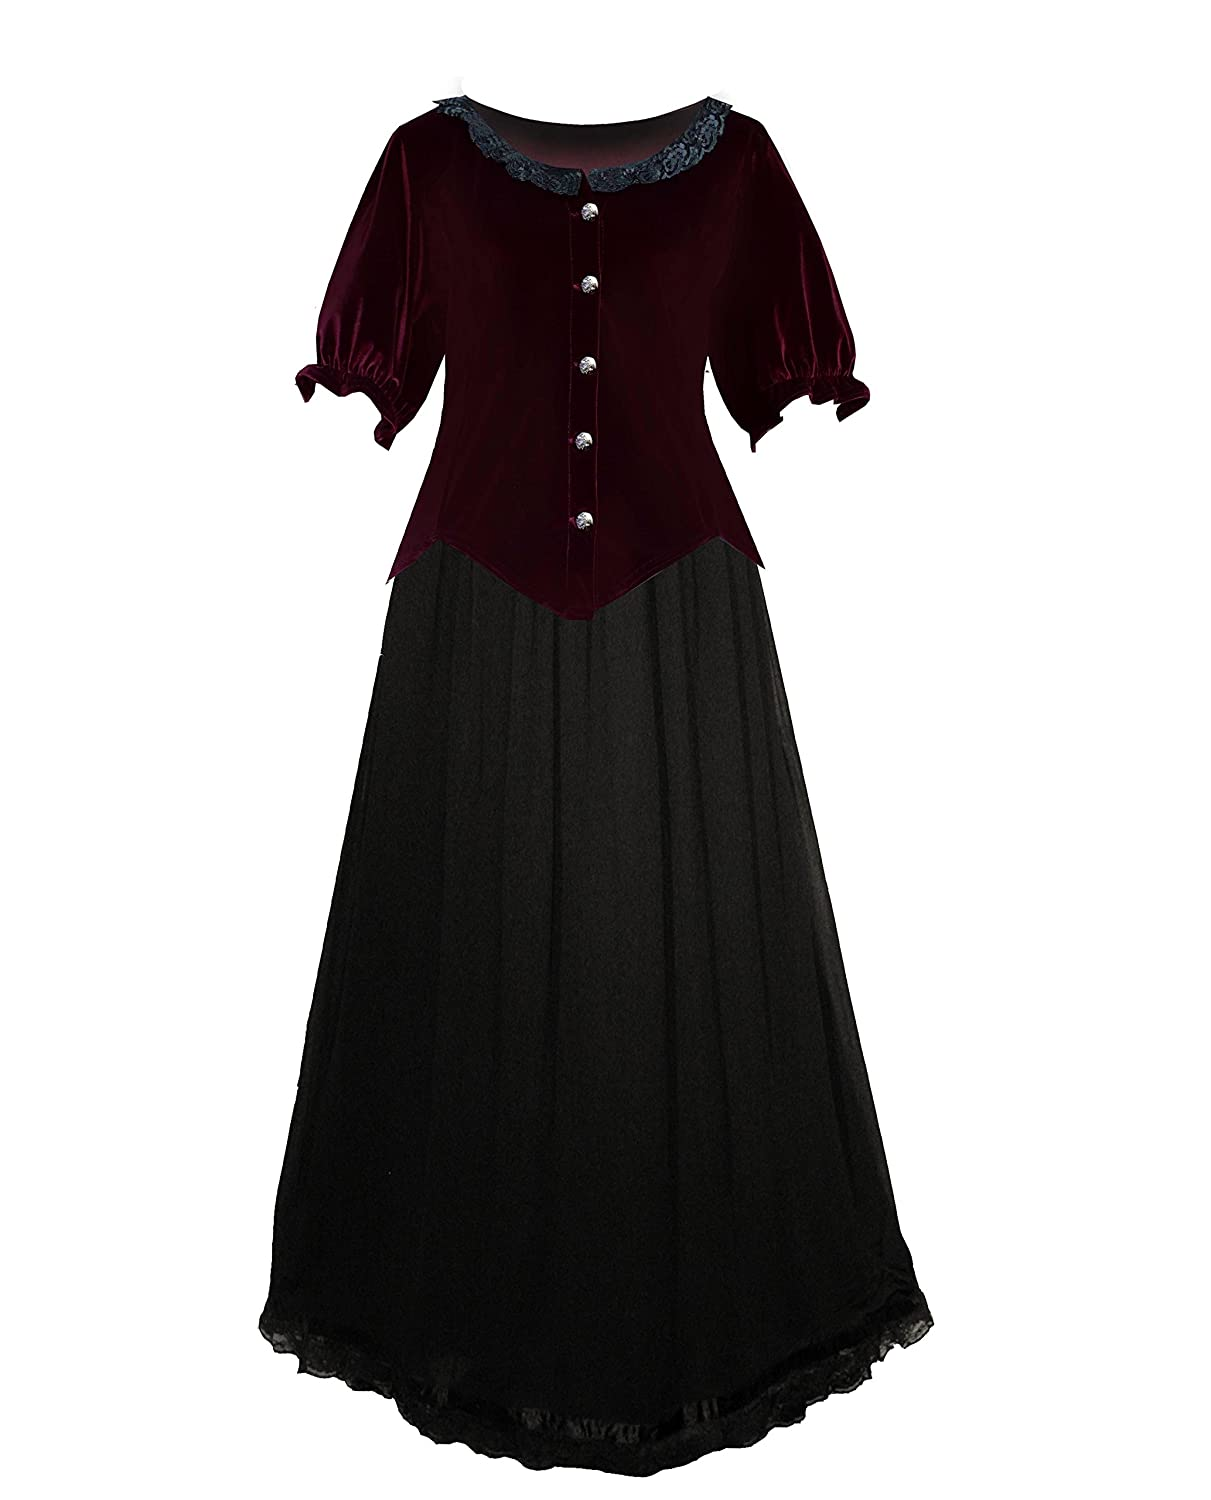 Victorian Dresses, Clothing: Patterns, Costumes, Custom Dresses Victorian Steampunk Gothic Renaissance Velvet Top & Long Skirt $89.00 AT vintagedancer.com